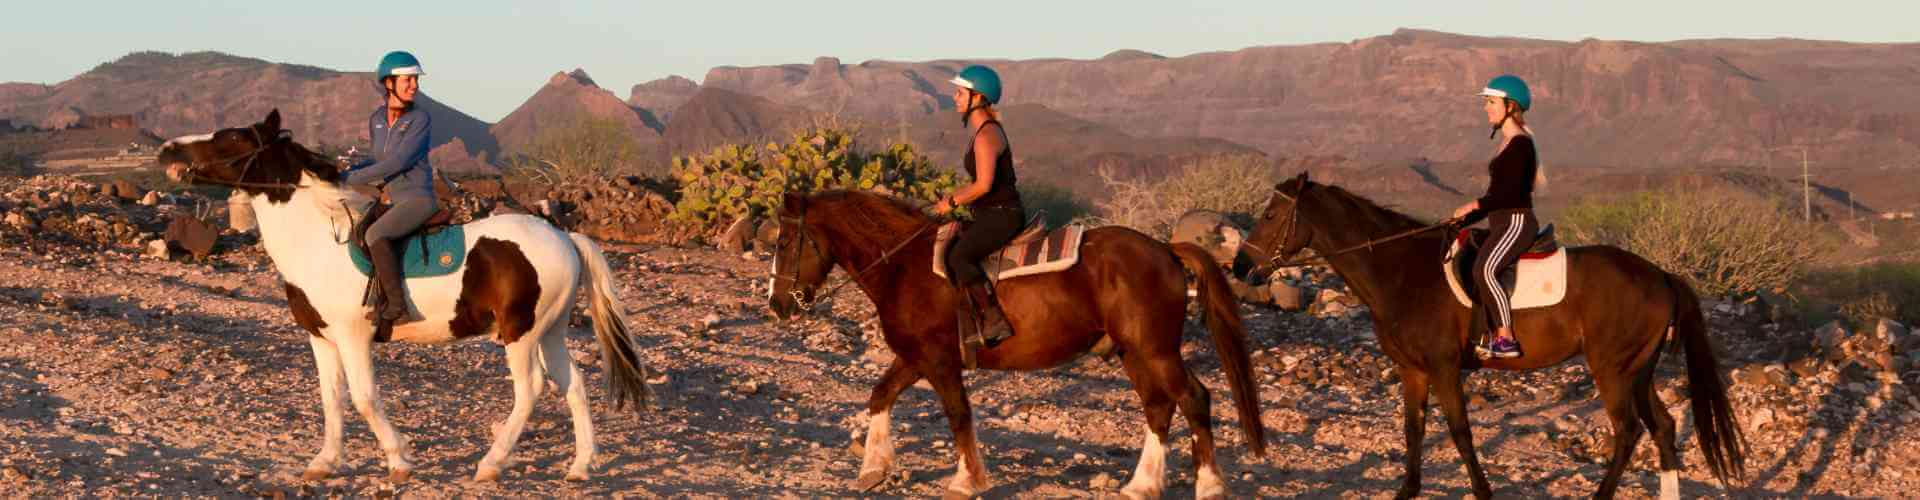 Horse Riding tour Maspalomas